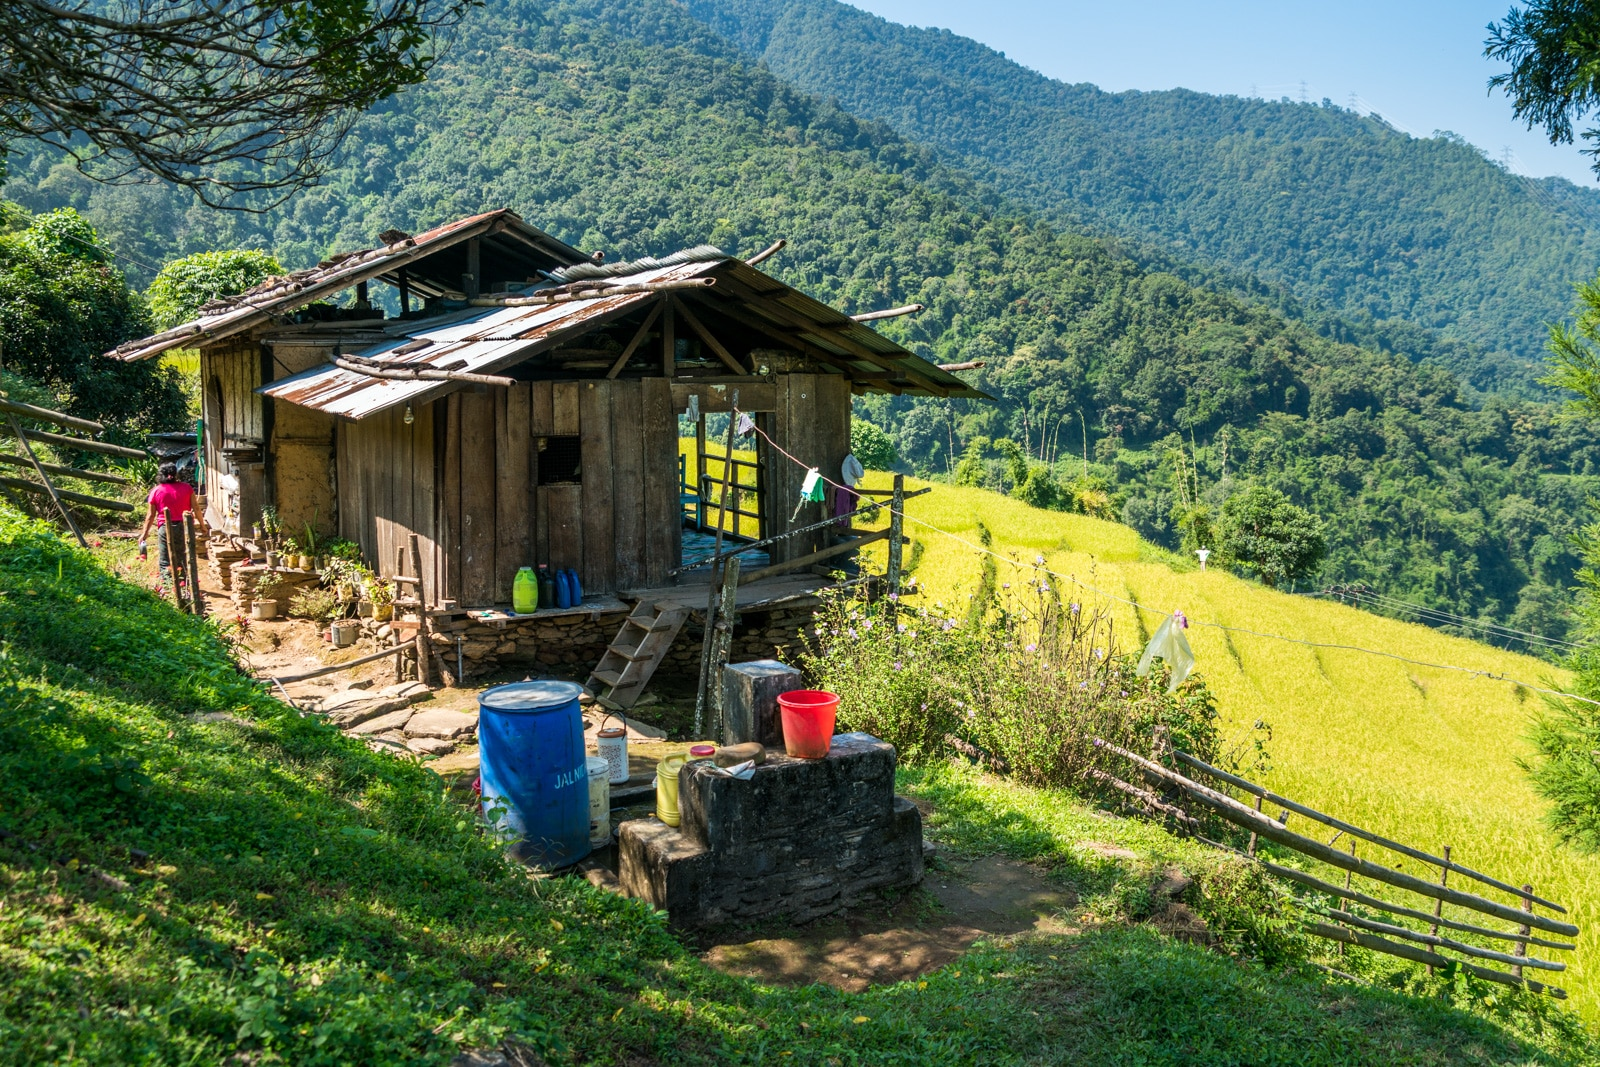 Going off the beaten track in Bhutan - House overlooking rice paddies near Tingtibi, Zhemgang district - Lost With Purpose travel blog